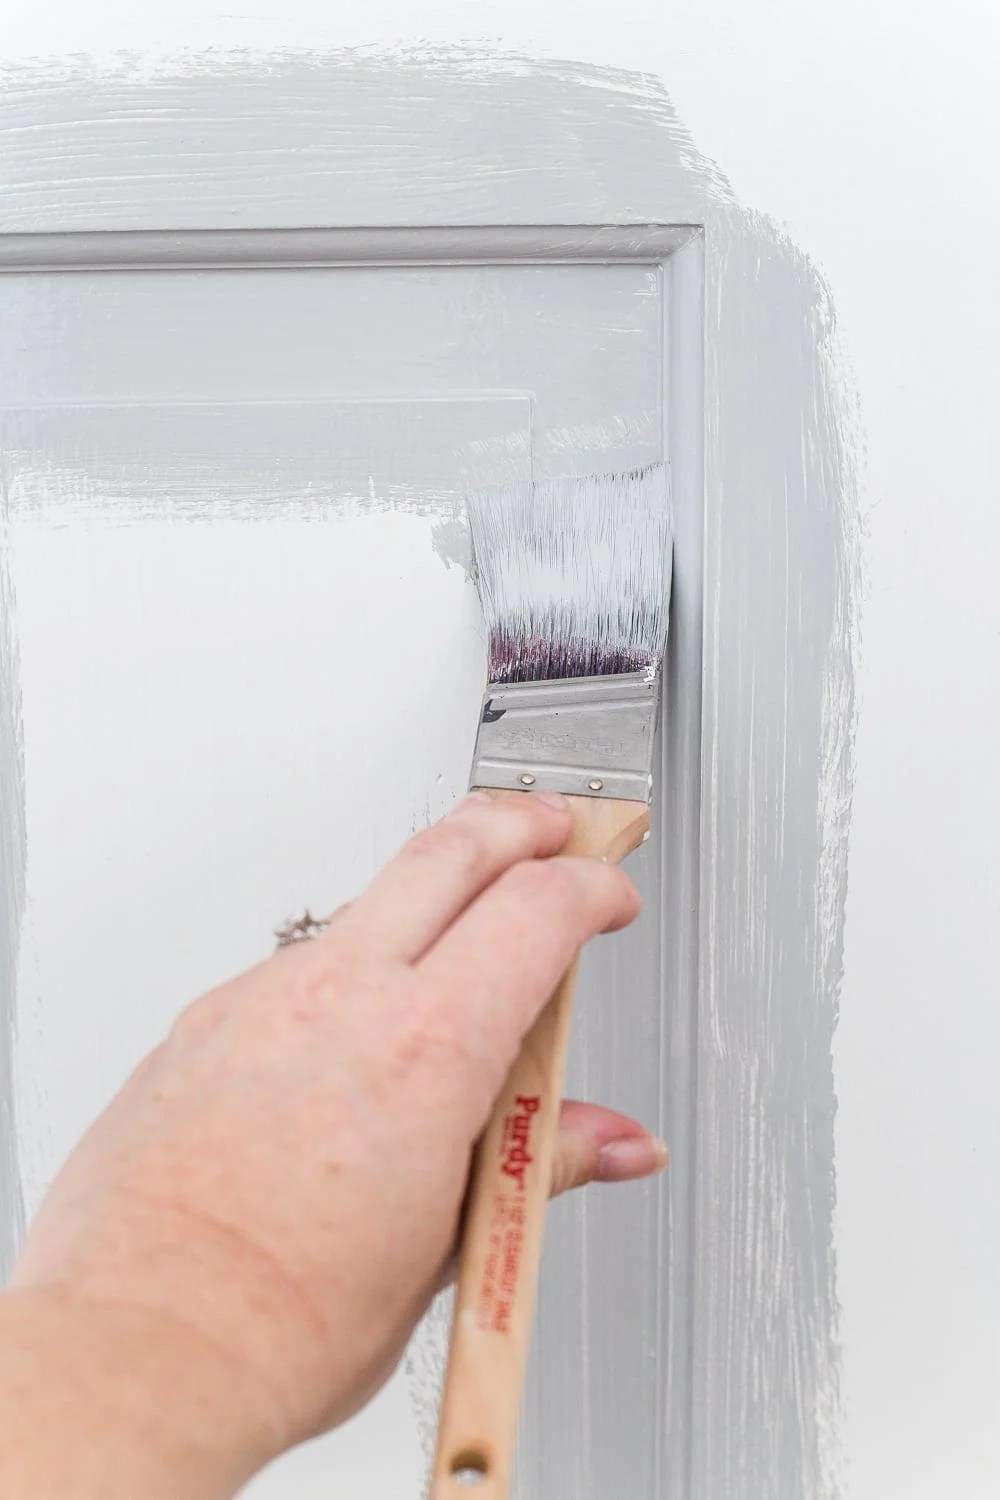 12 of the most common decorating mistakes most people make when choosing paint colors, furniture layouts, and styling, and tips on how to avoid them. #decorating #decoratingmistakes #decoratingtips - Choosing paint colors in bad lighting